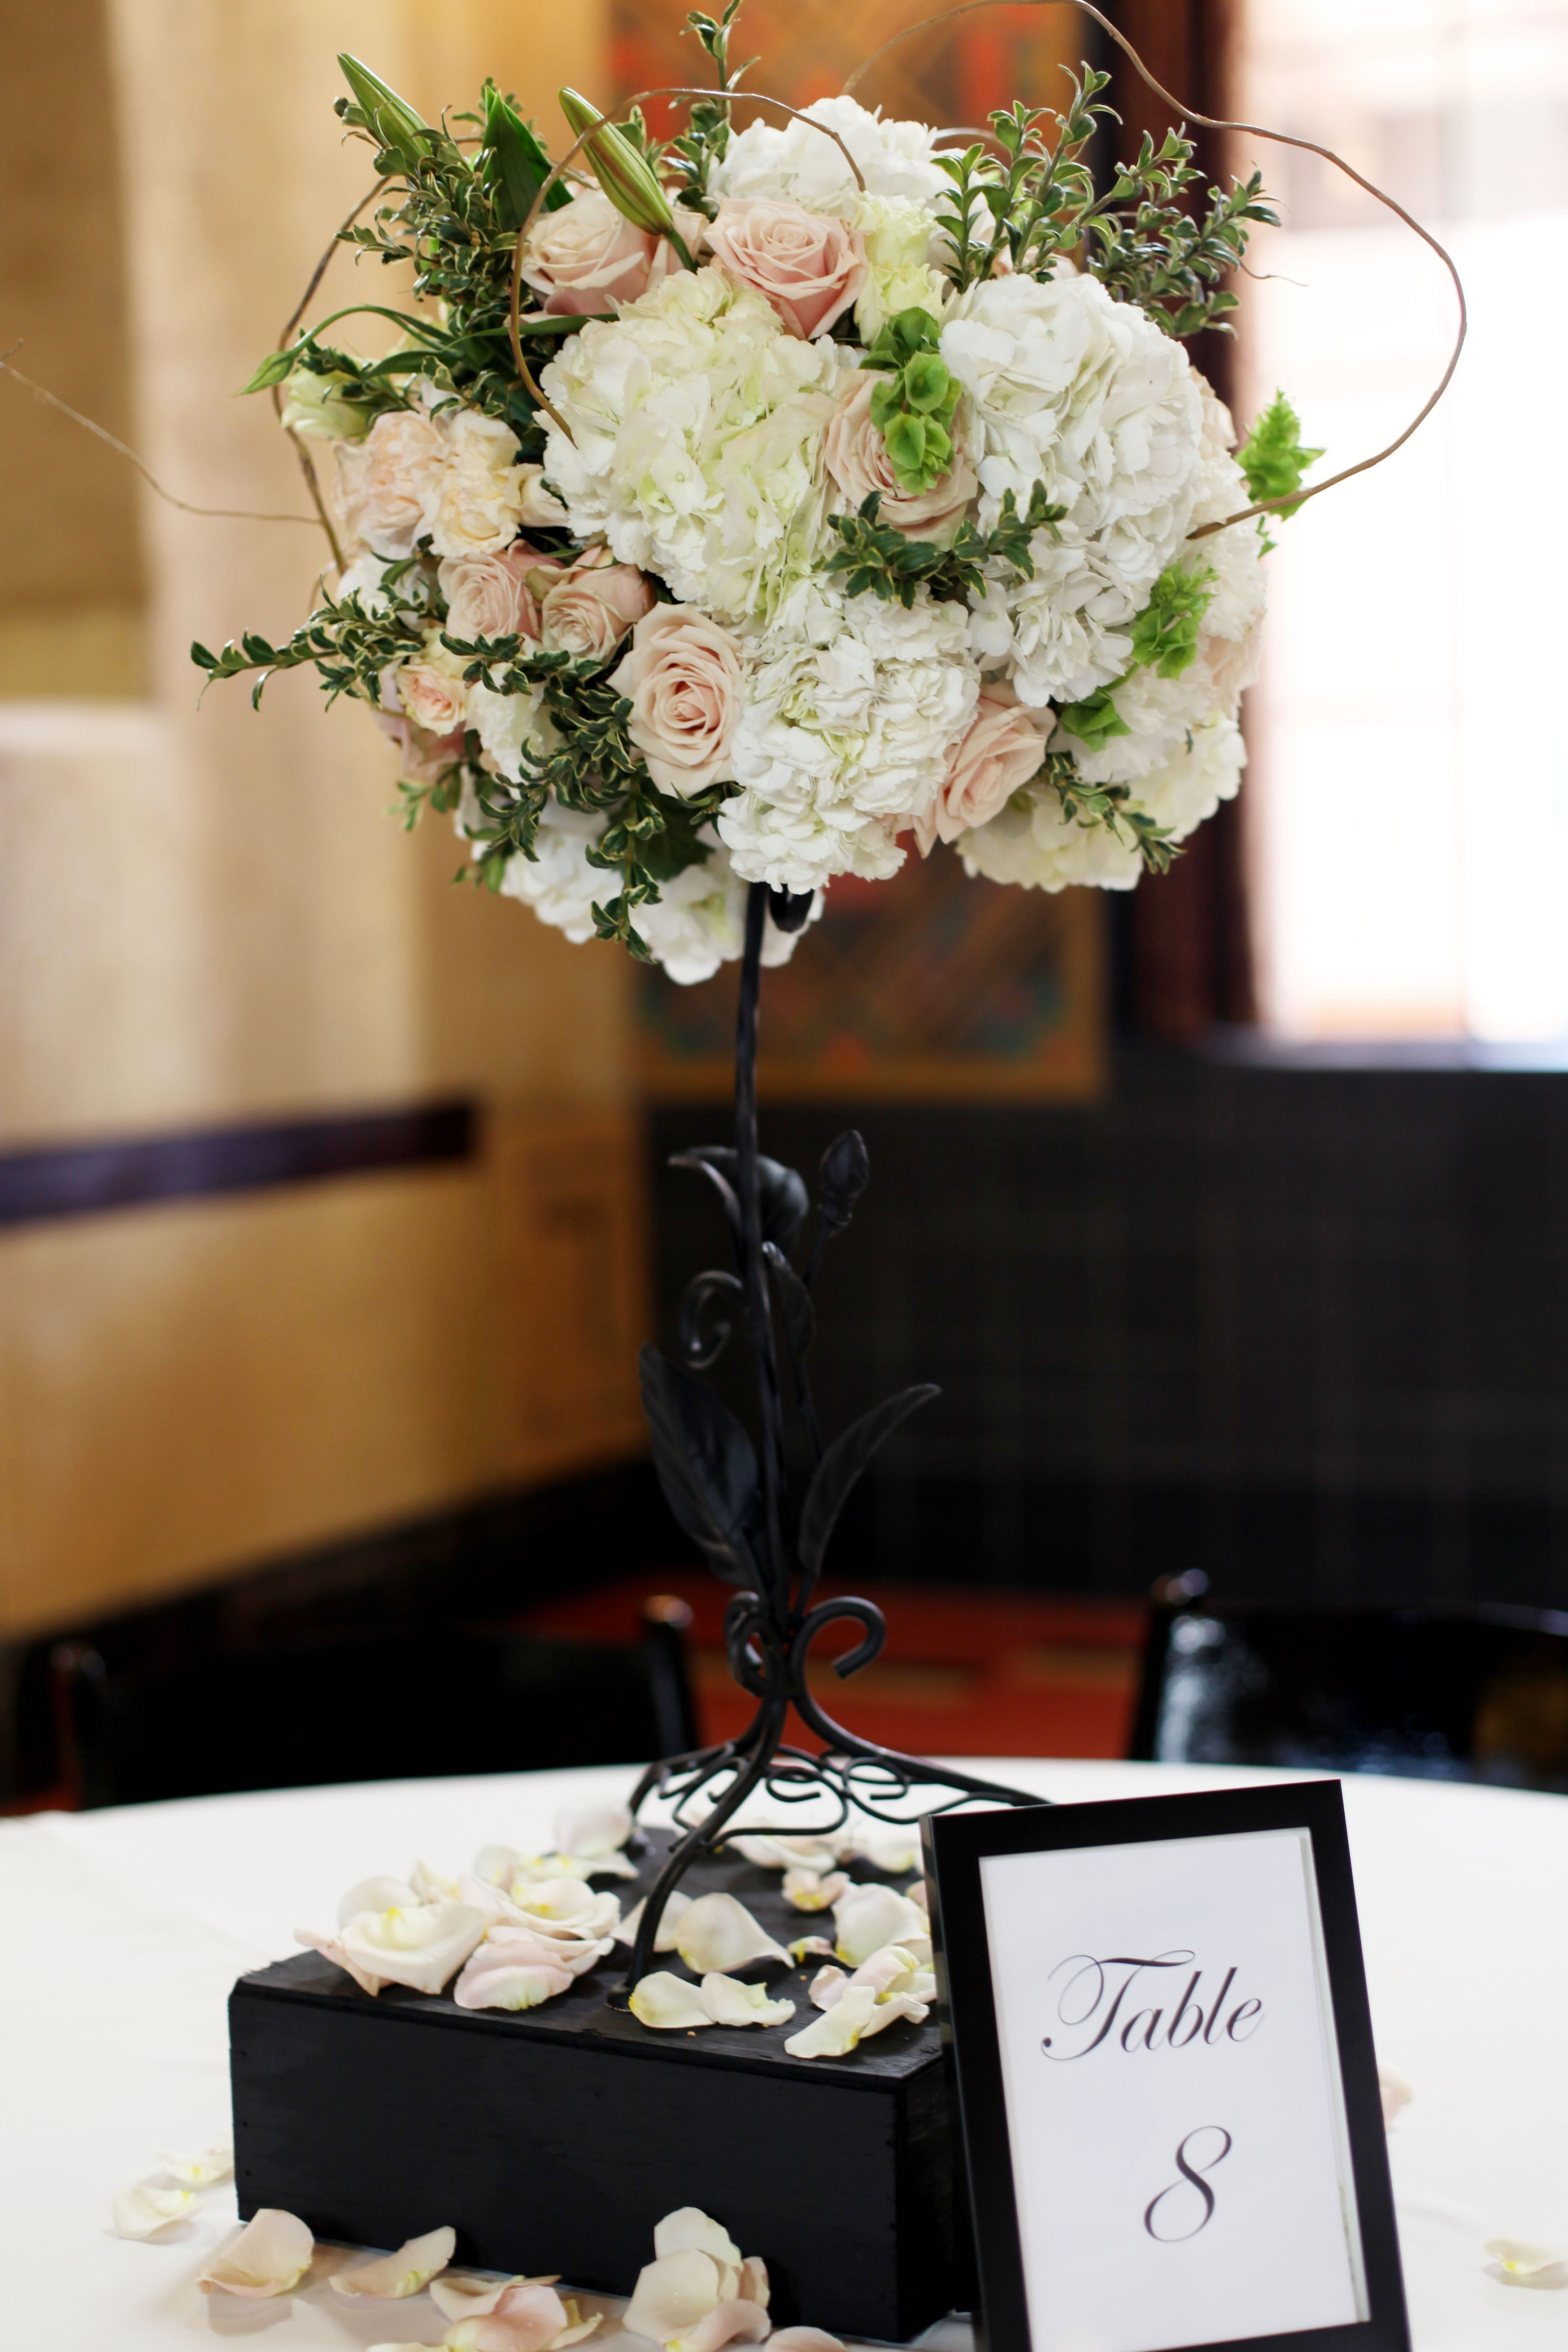 glass ball vase of decorative branches for weddings awesome tall vase centerpiece ideas in decorative branches for weddings luxury union station the little branch of decorative branches for weddings decorative